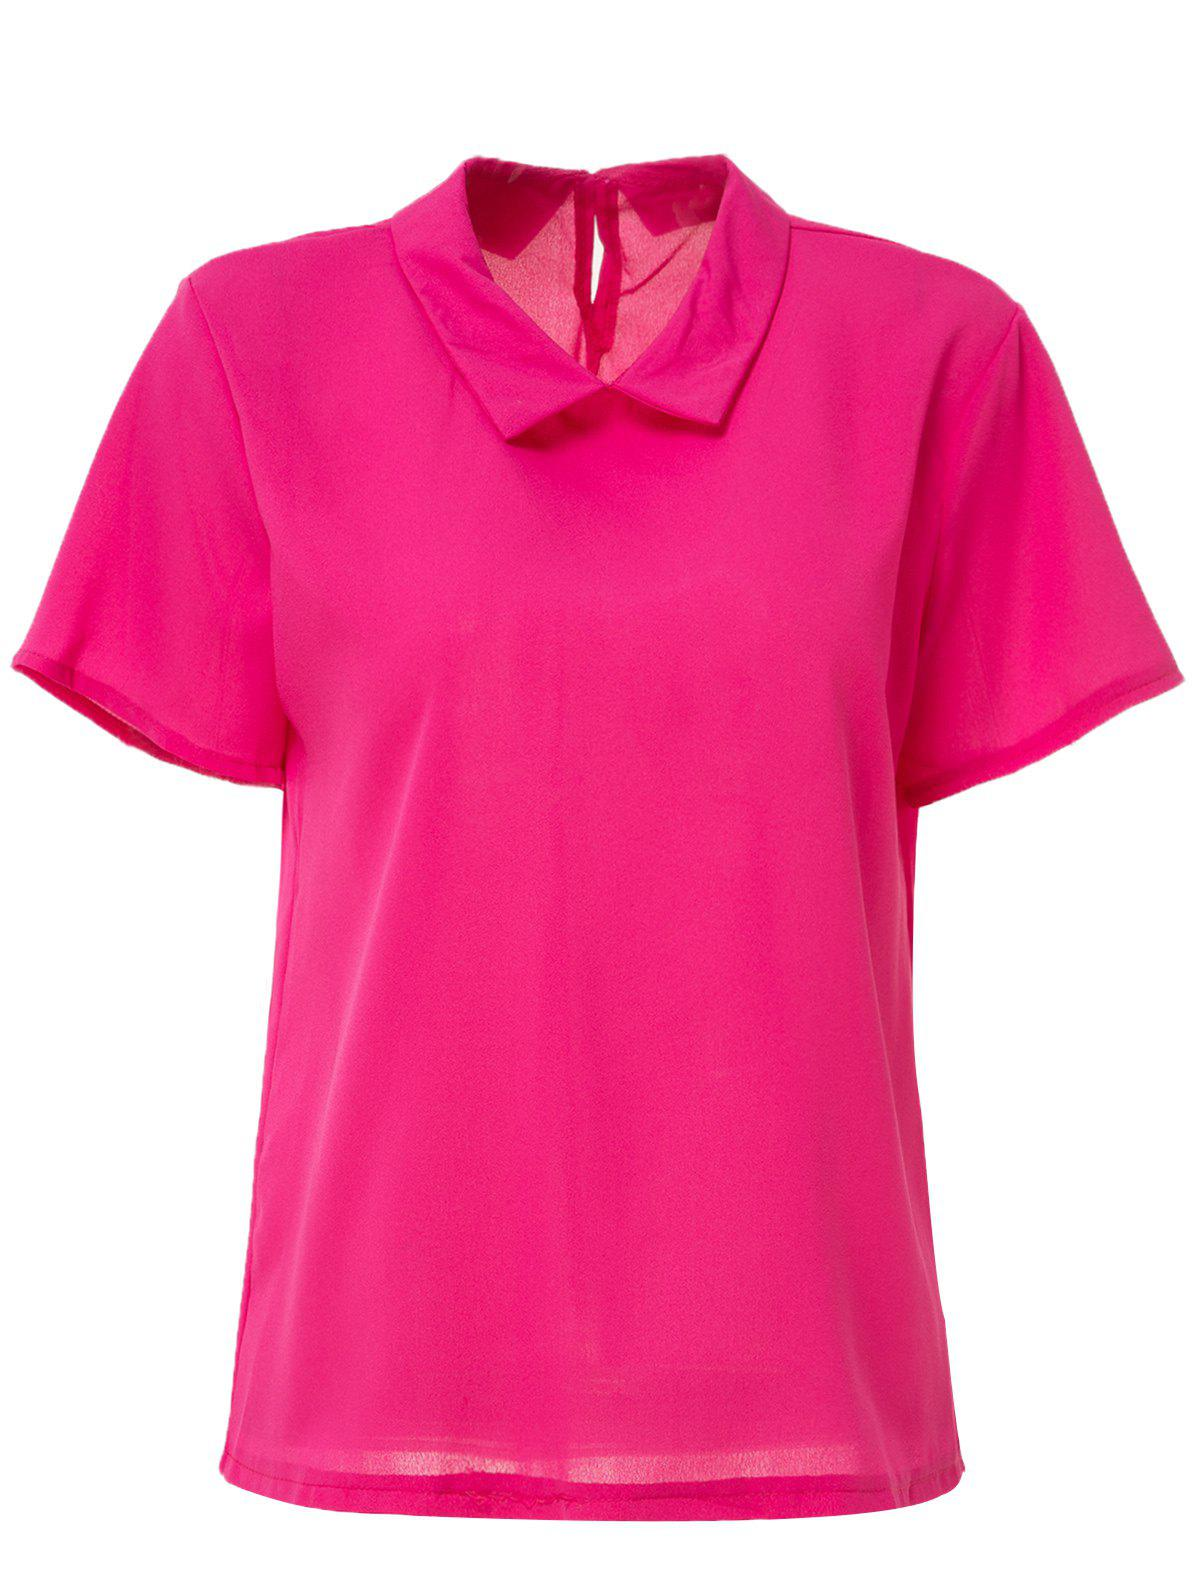 Short Sleeve Candy Color Blouse For Women - RED XL